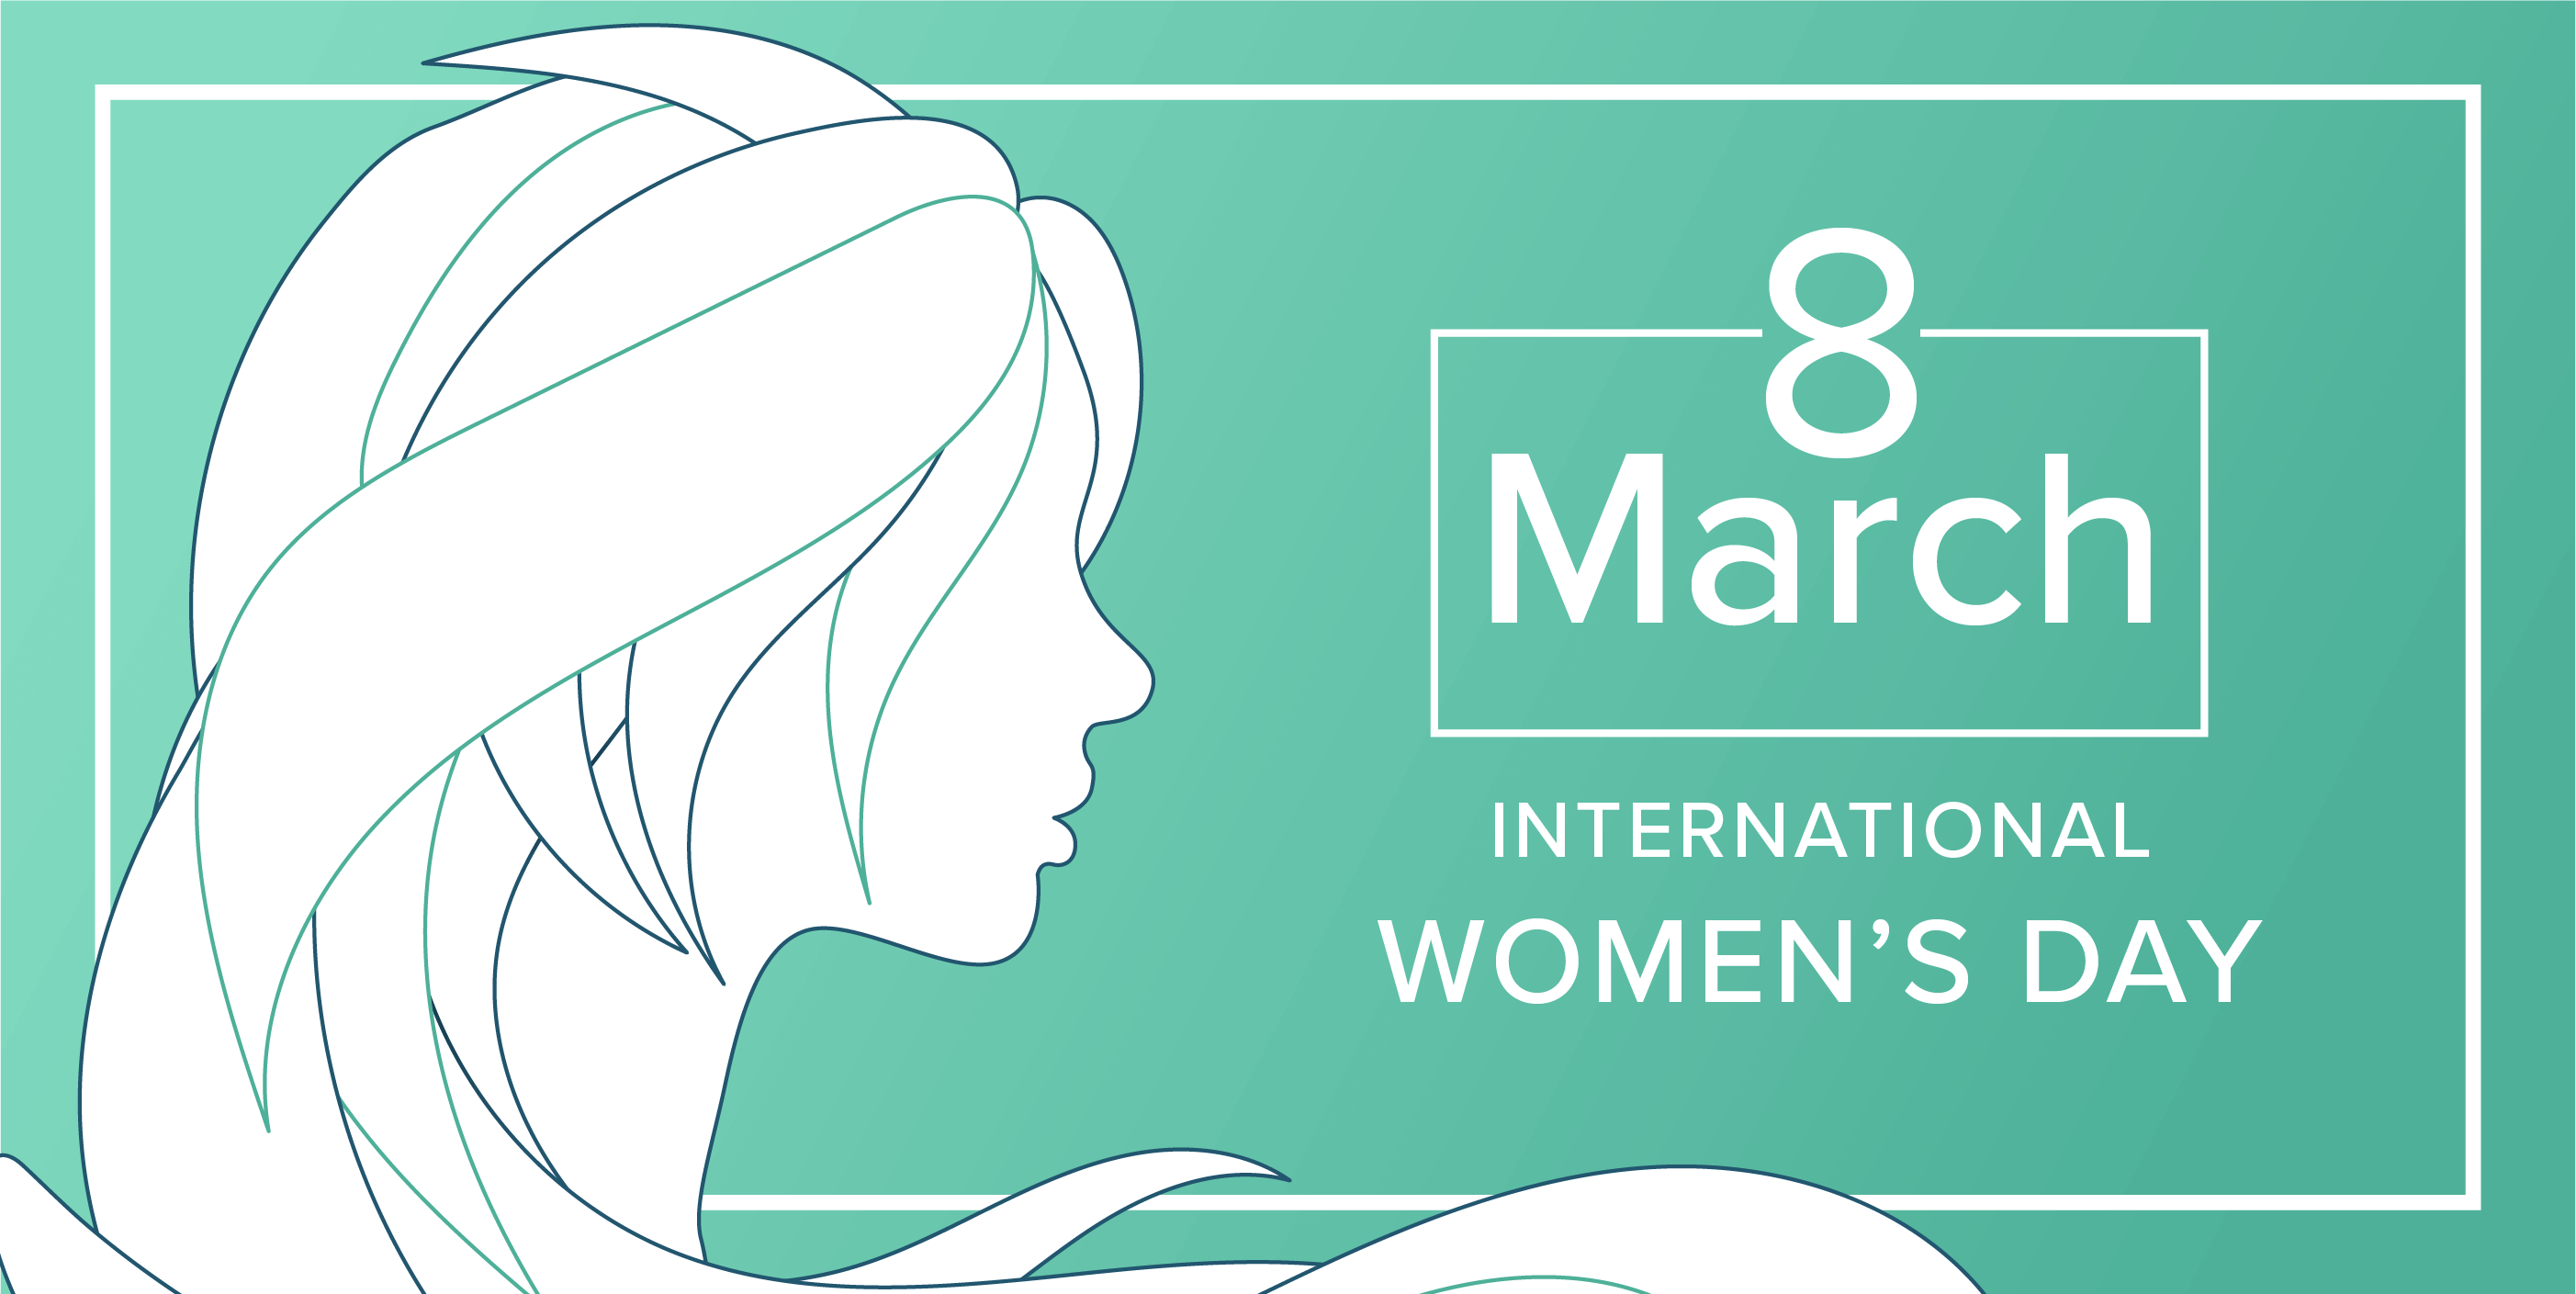 Happy International Women's Day from Quincus!